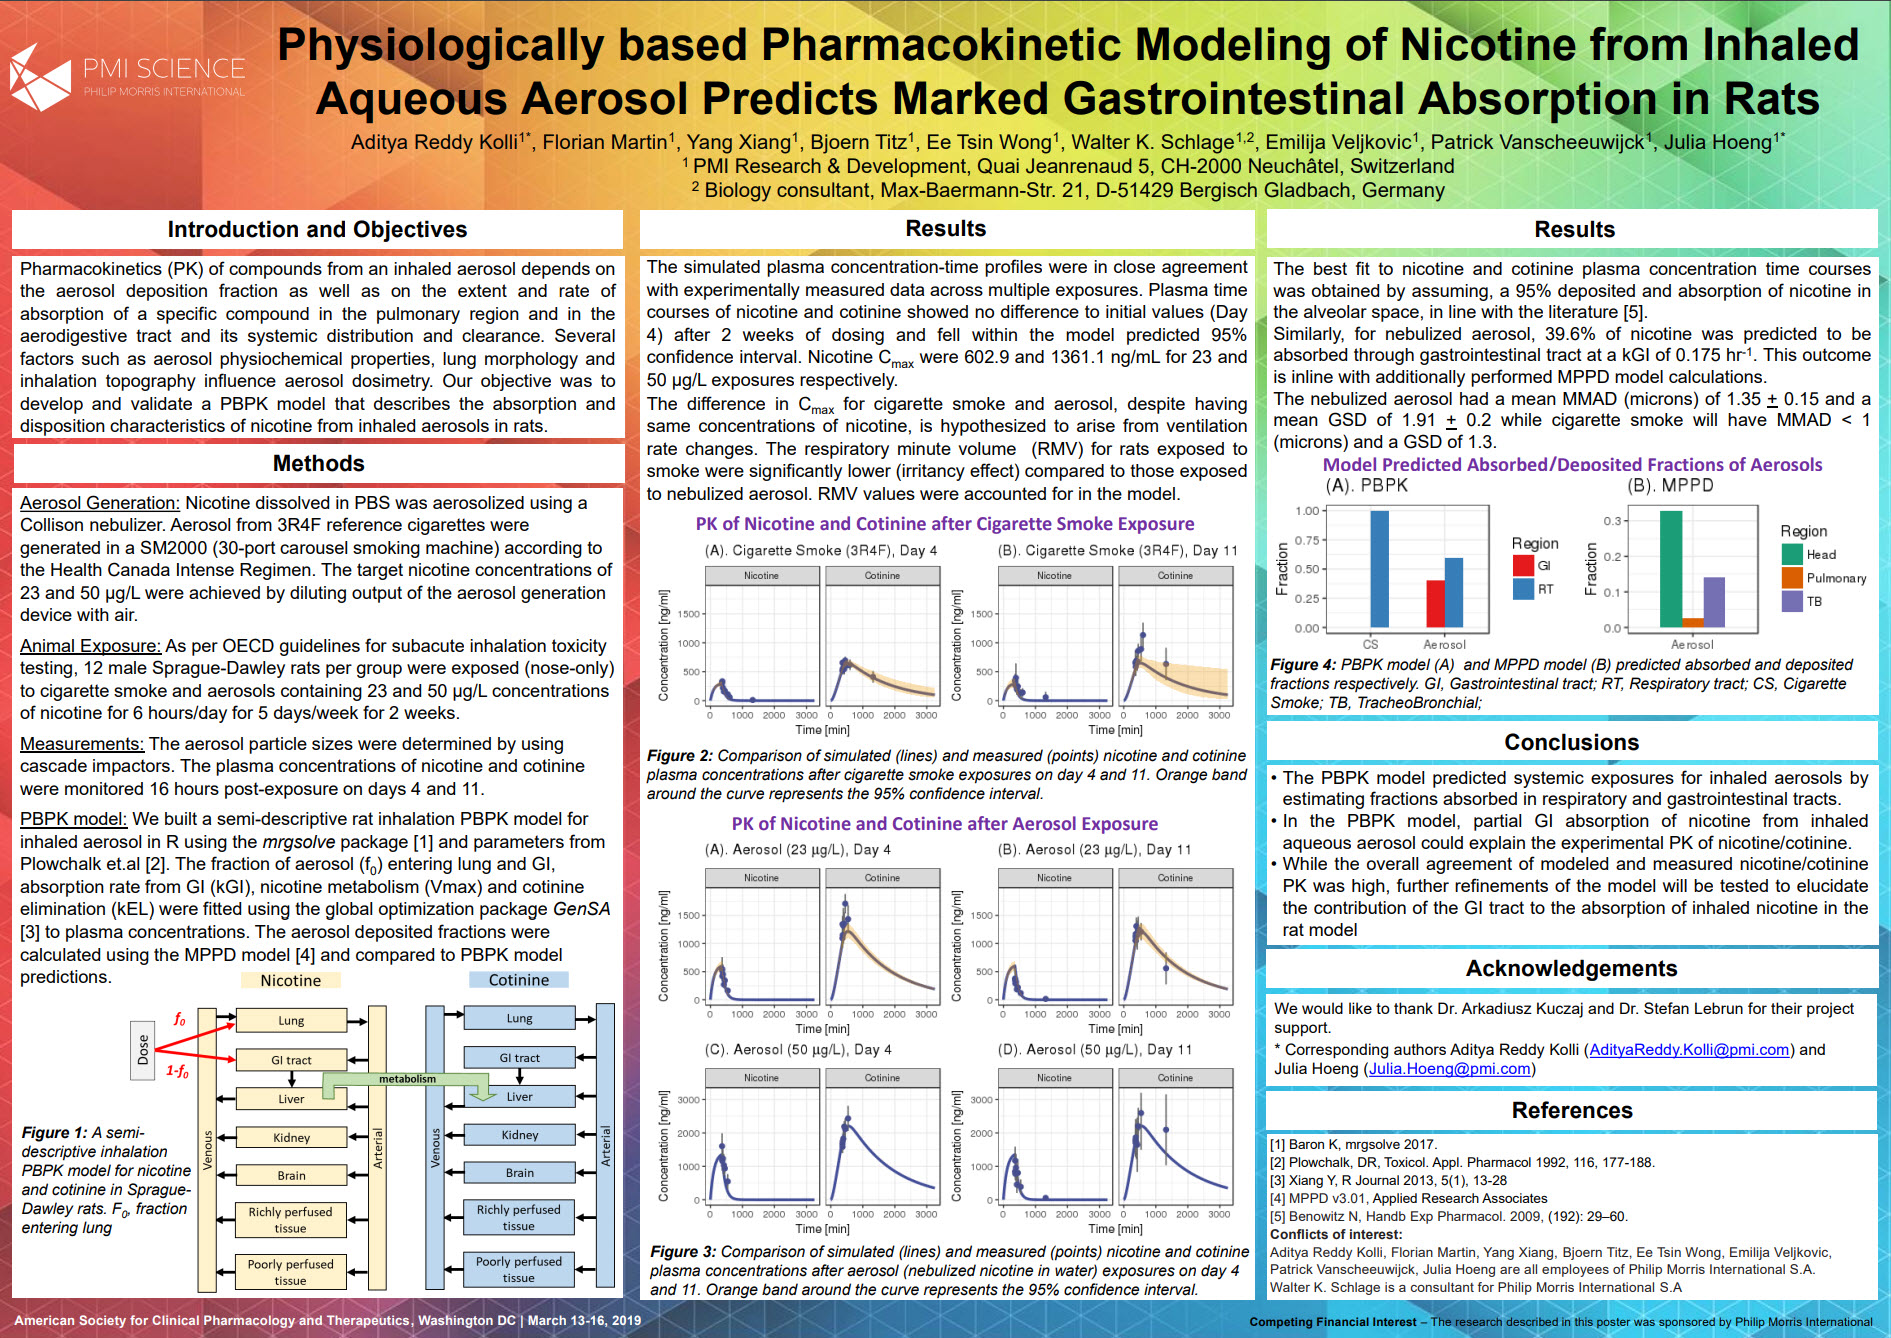 A.R.Kolli_2019_Physiologically based Pharmacokinetic Modeling of Inhaled Aerosol Predicts Marked_